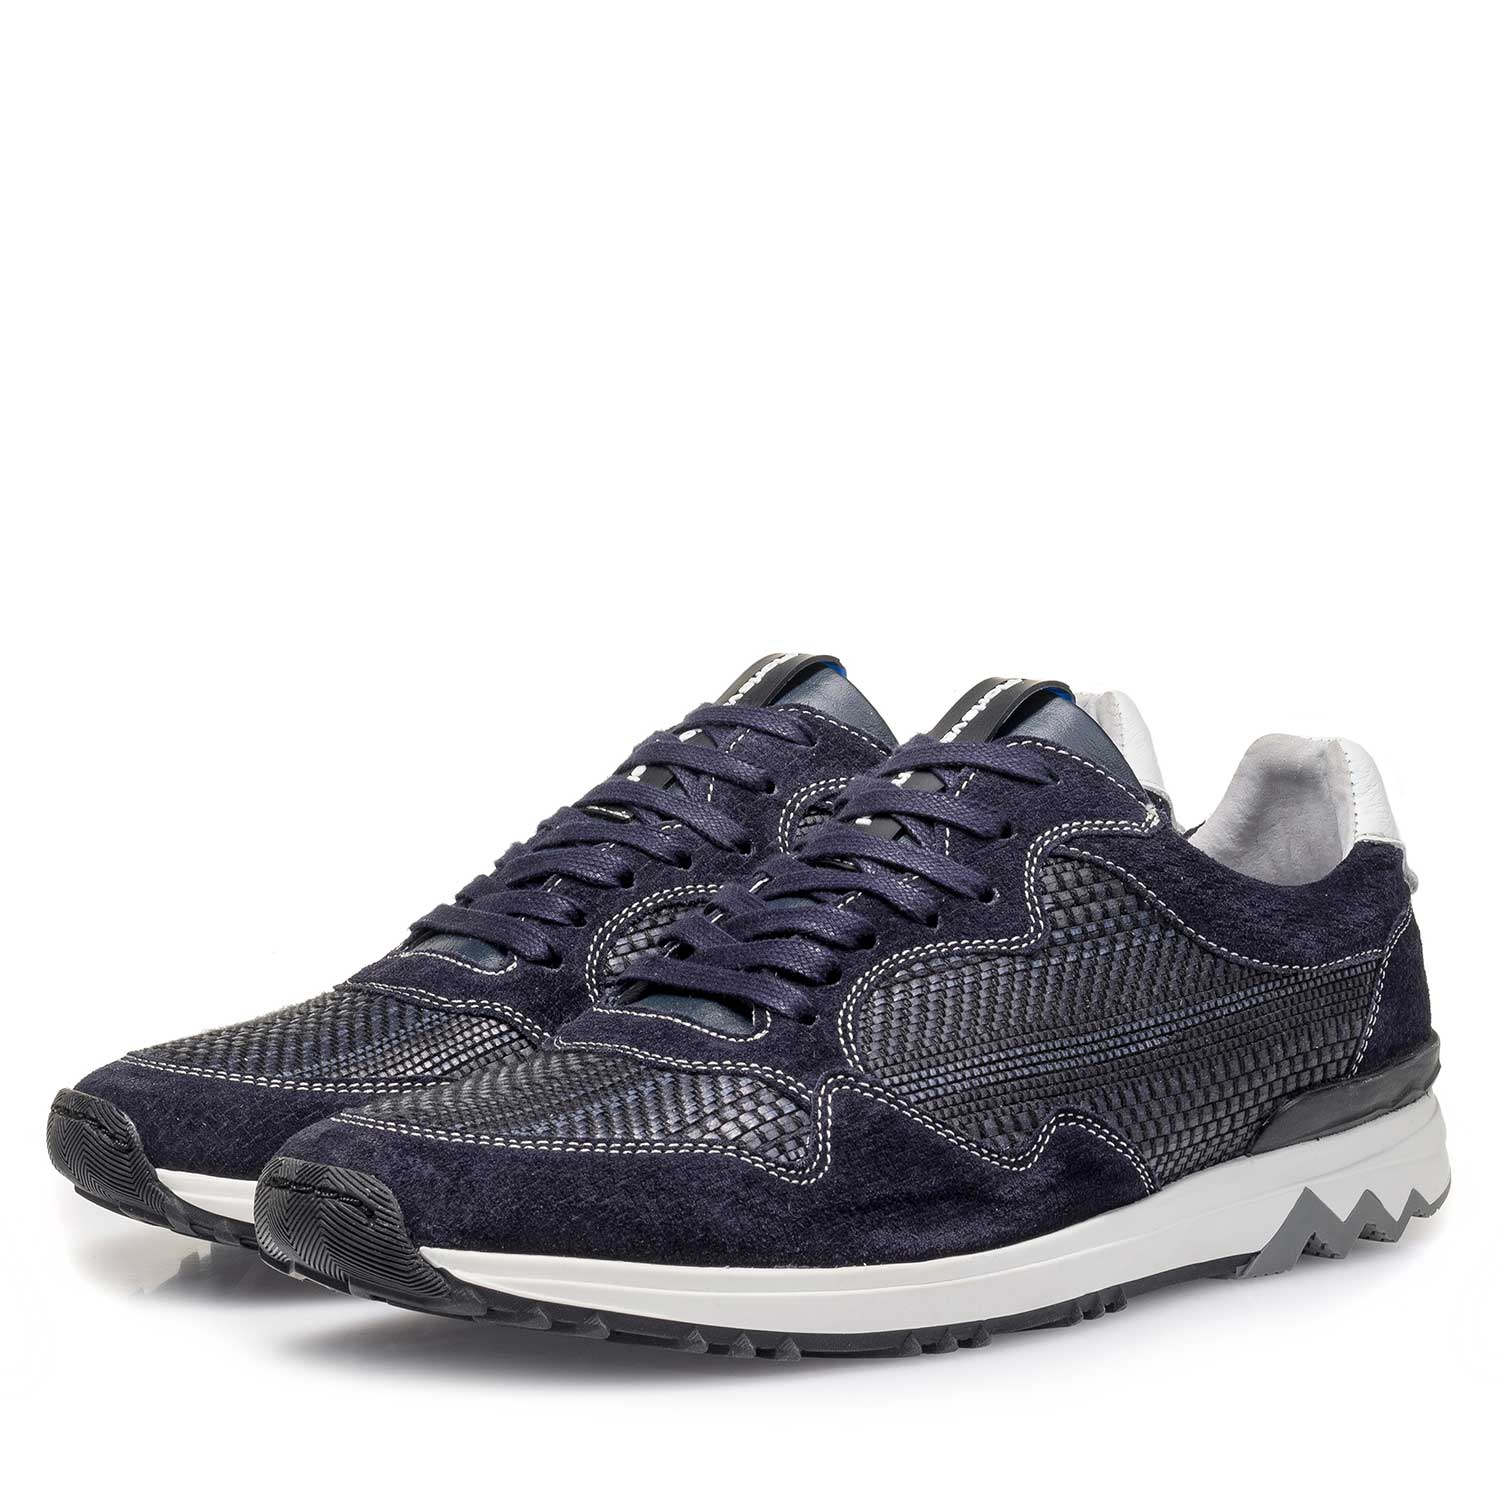 16238/00 - Dark blue suede leather sneaker with a pattern